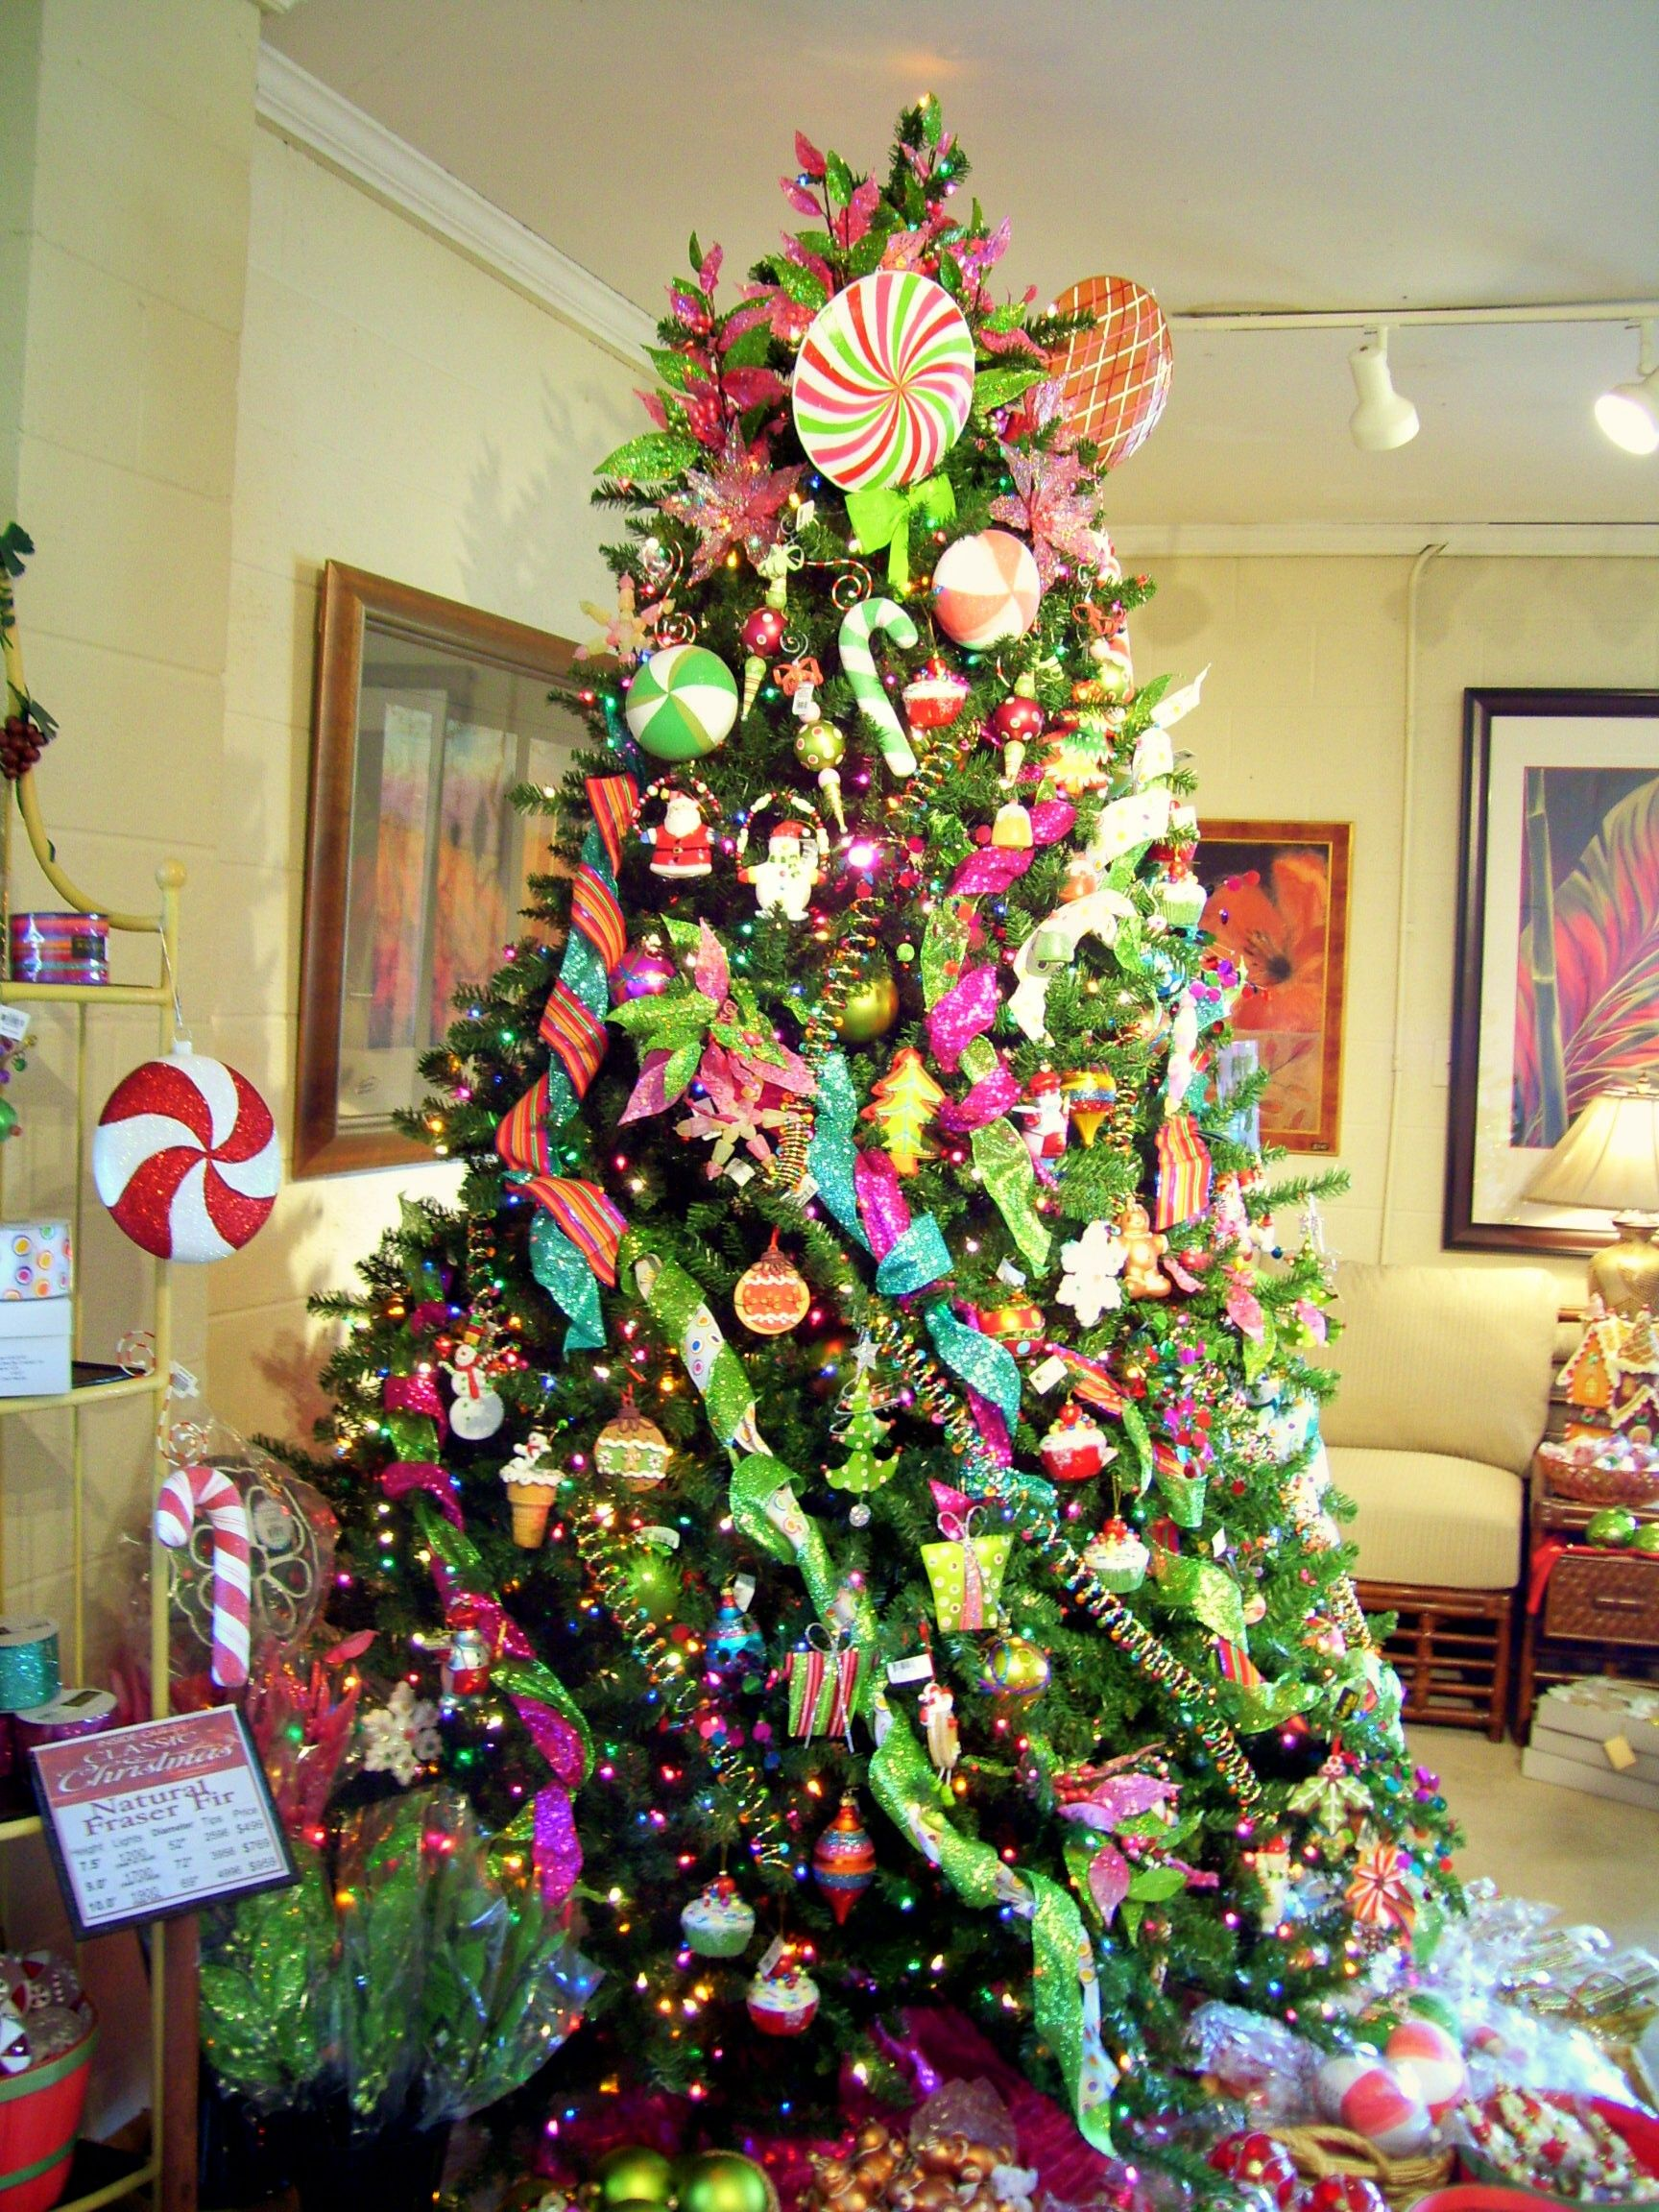 Inside-Out's Incredible Christmas Tree Display In Brentwood, TN